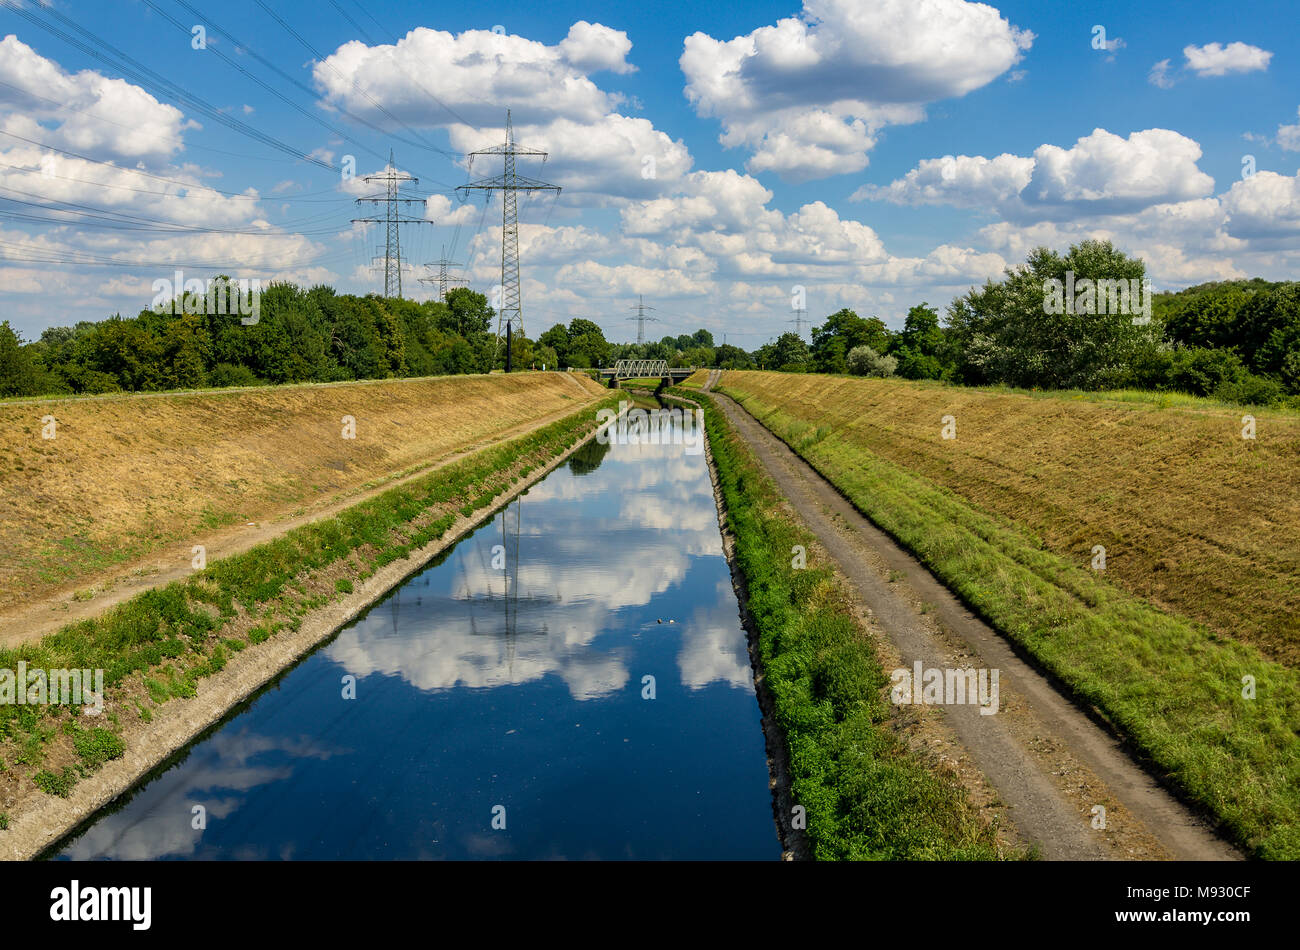 The river Emscher by Essen, Germany Stock Photo